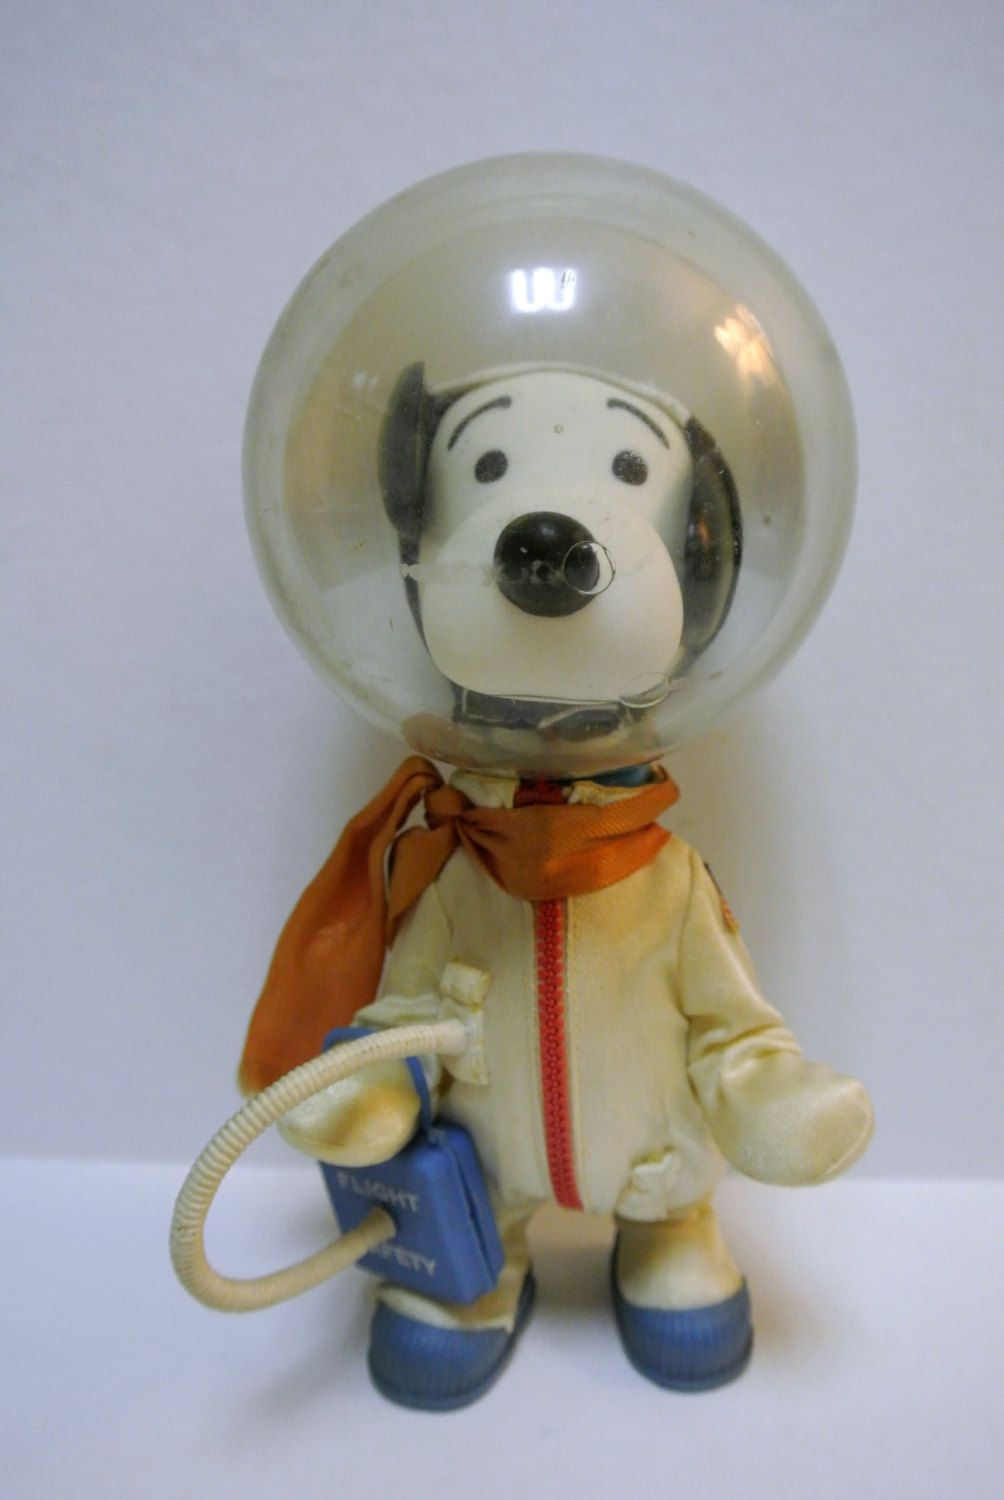 Vintage Astronaut Snoopy Doll Toy By United Feature Syndicate Inc 1969 Collectible Peanuts Charlie Brown Charlie Brown Peanuts Doll Toys Charlie Brown